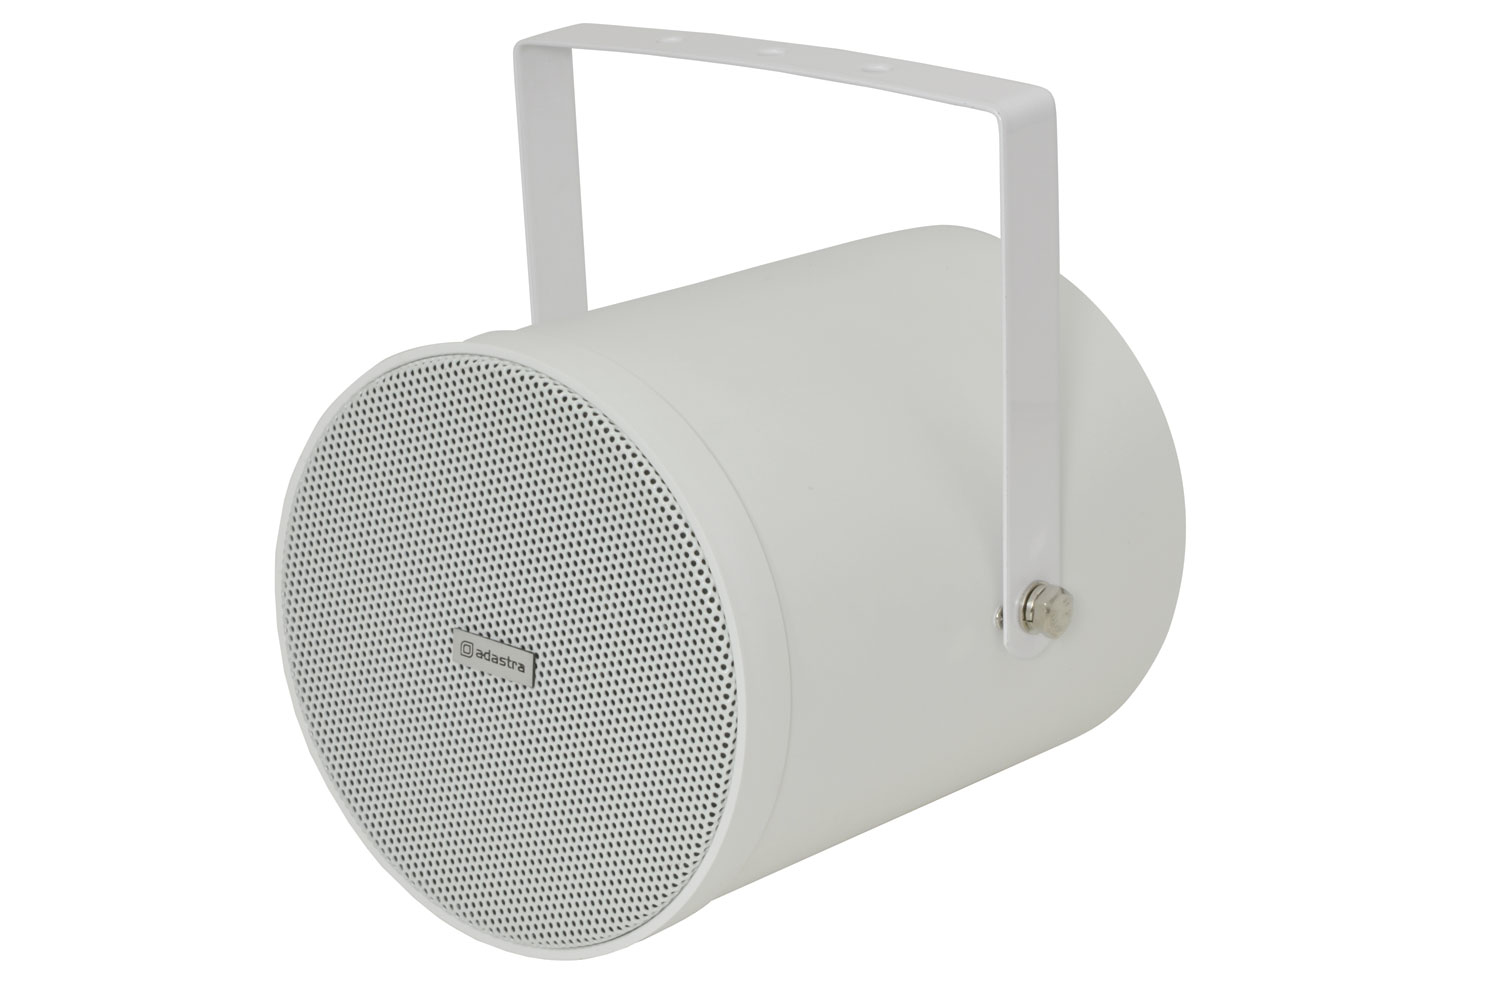 Adastra 952.942UK loudspeaker 2-way 25 W White Wired